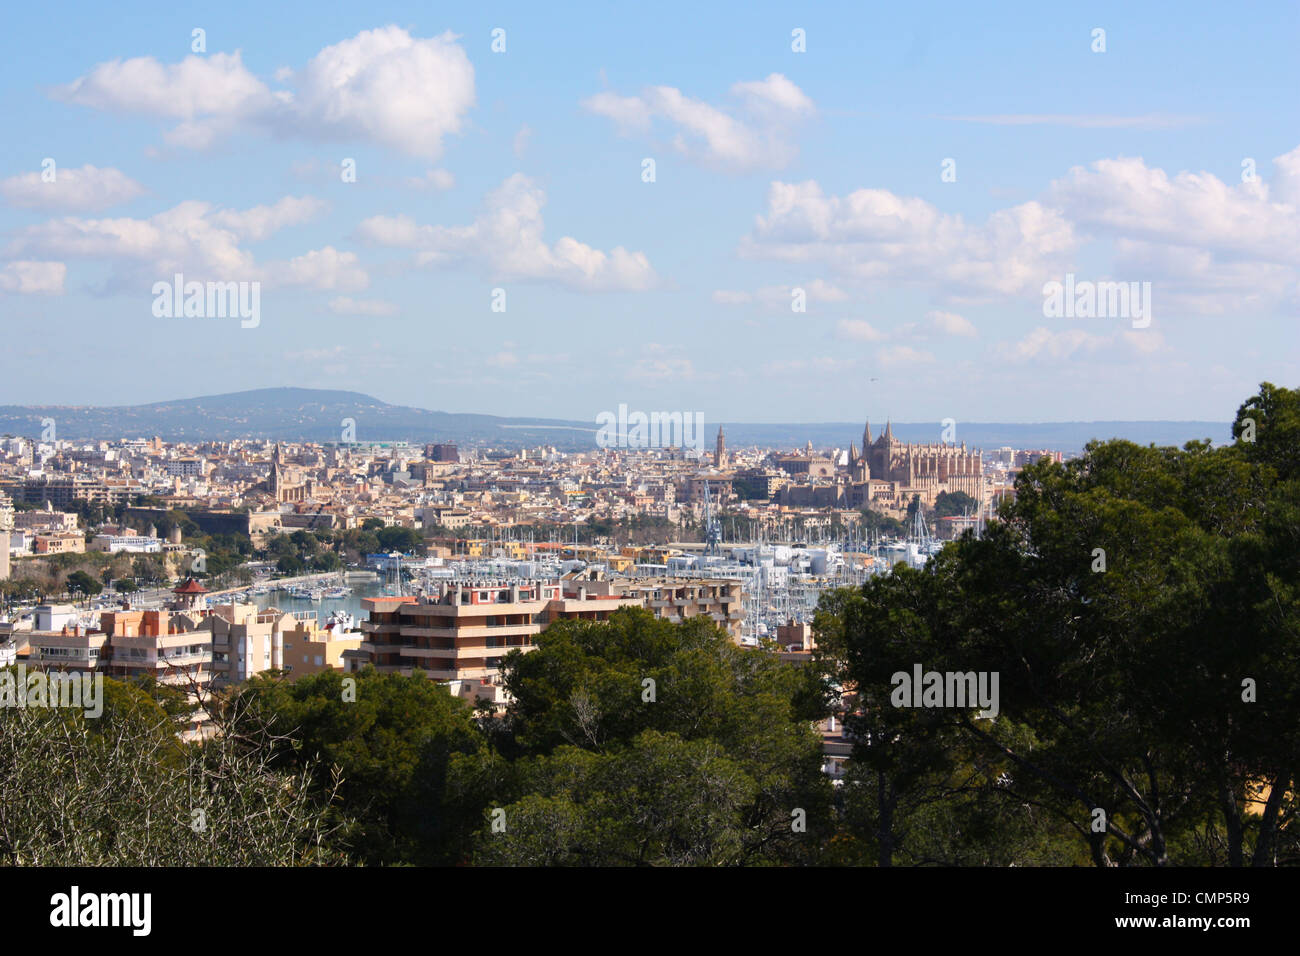 City view of Palma De Mallorca, Spain Stock Photo